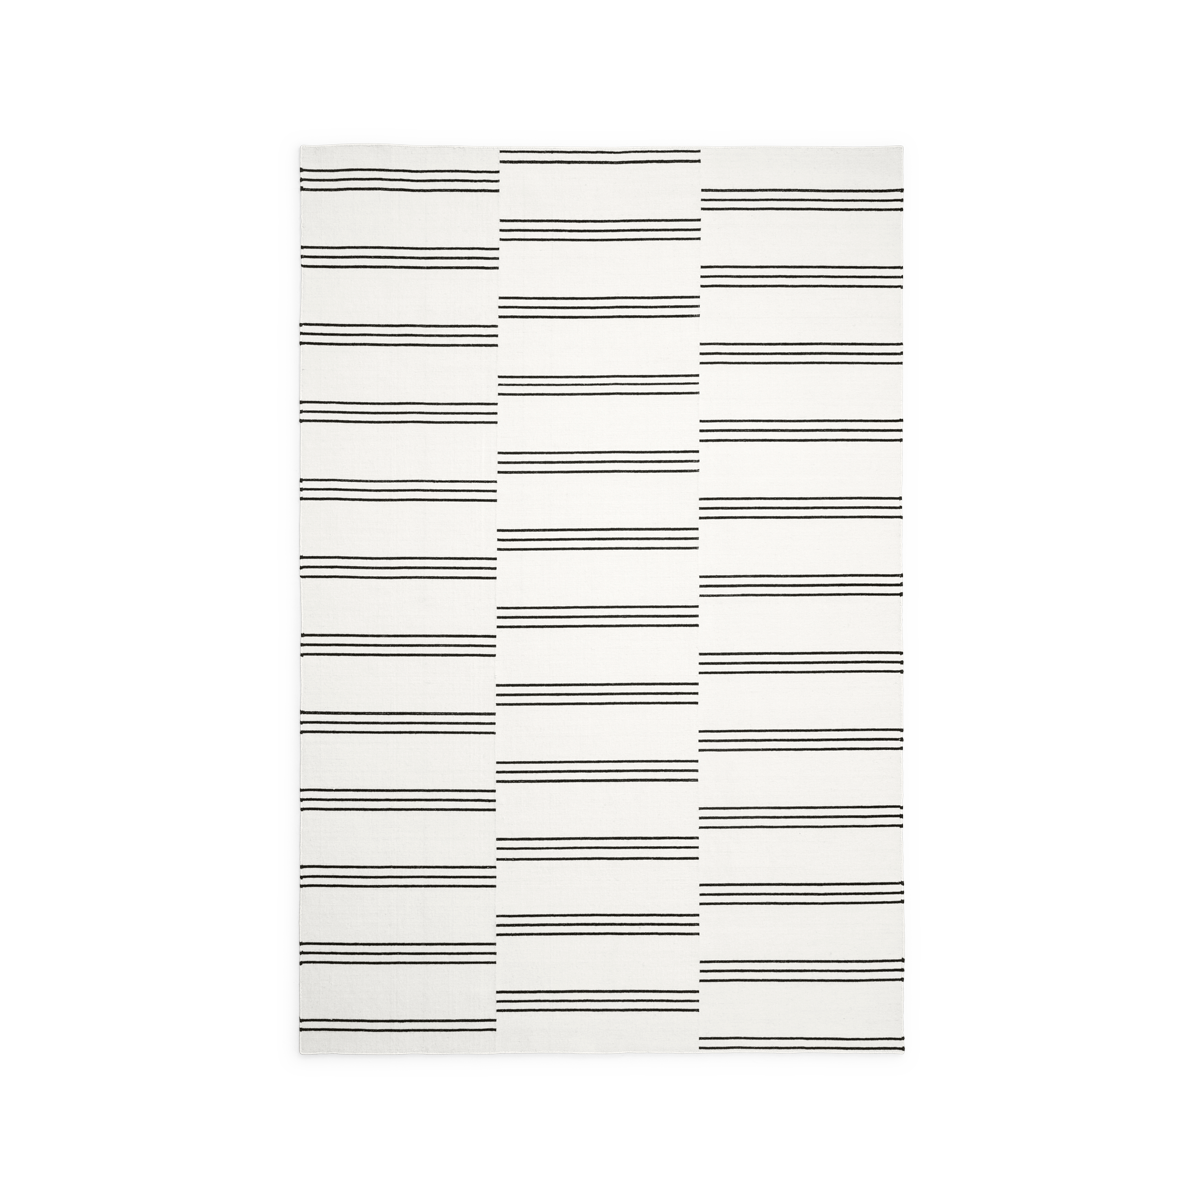 Product image of the flatweave rug Stripes in the colors Cream and Black. The rug has a pattern made from stripes in three rows in a black color.